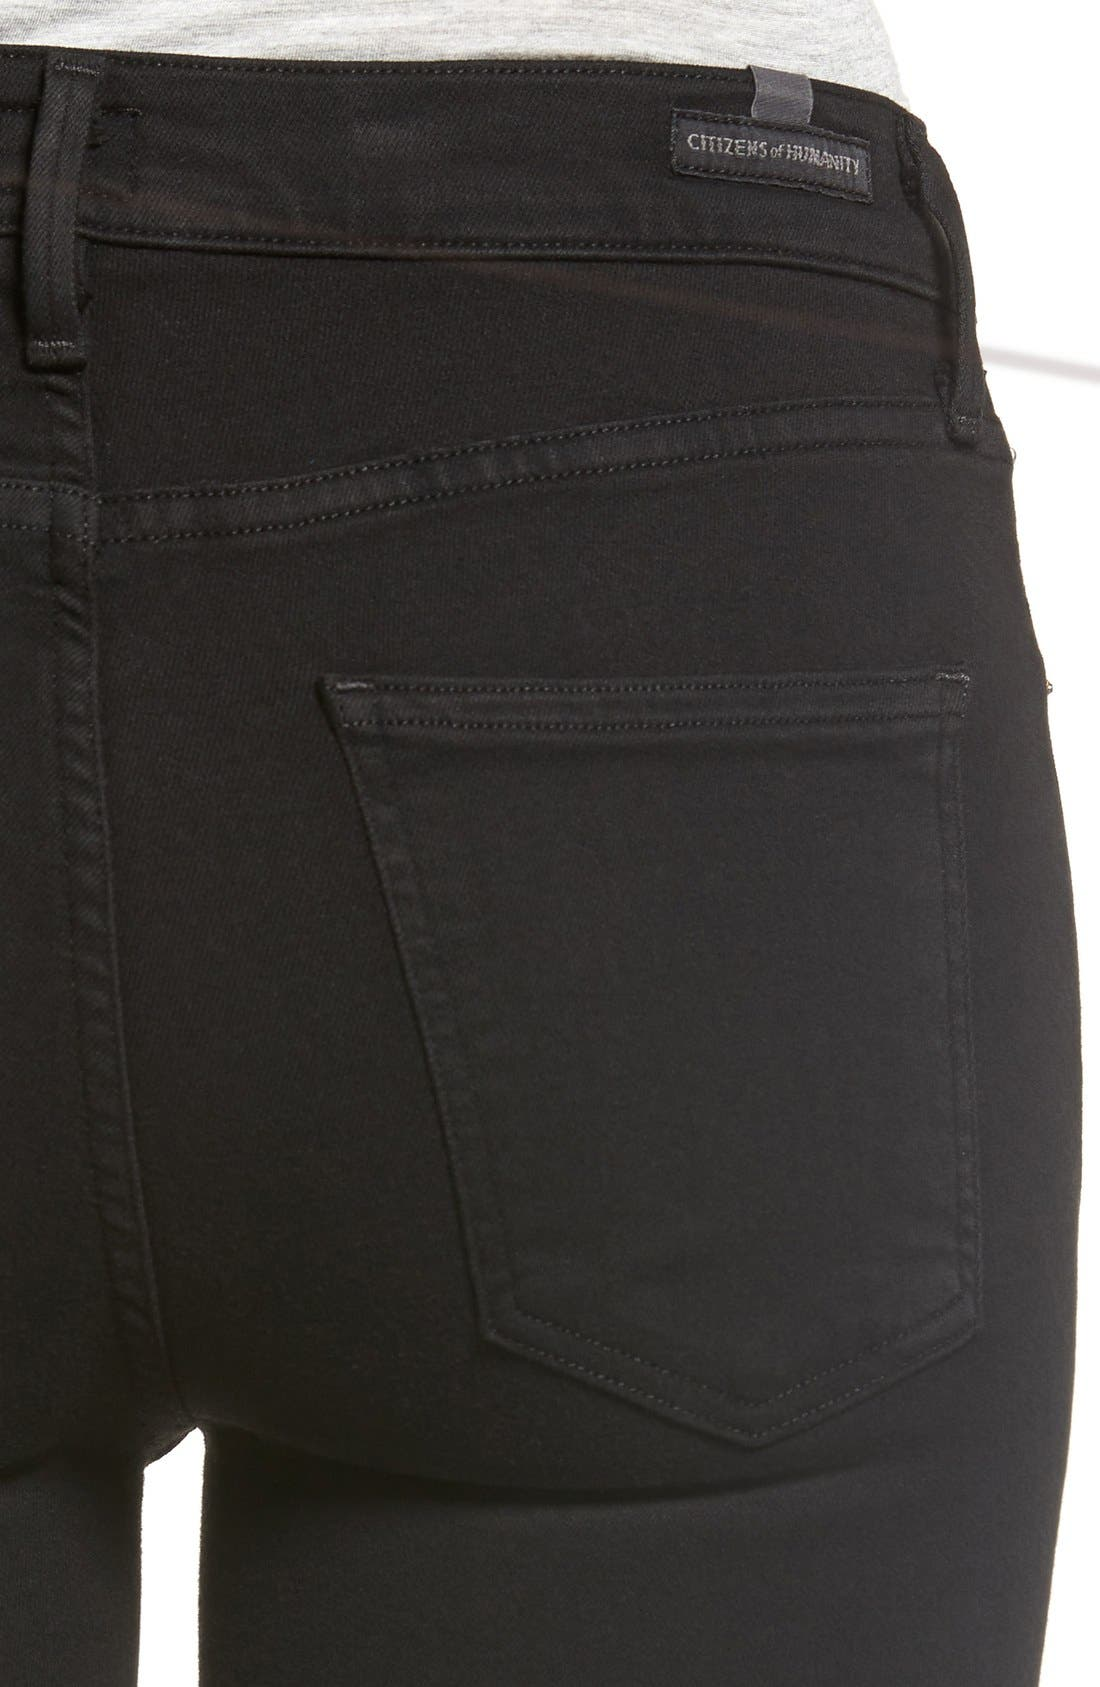 Alternate Image 4  - Citizens of Humanity 'Rocket' Skinny Jeans (All Black) (Petite)